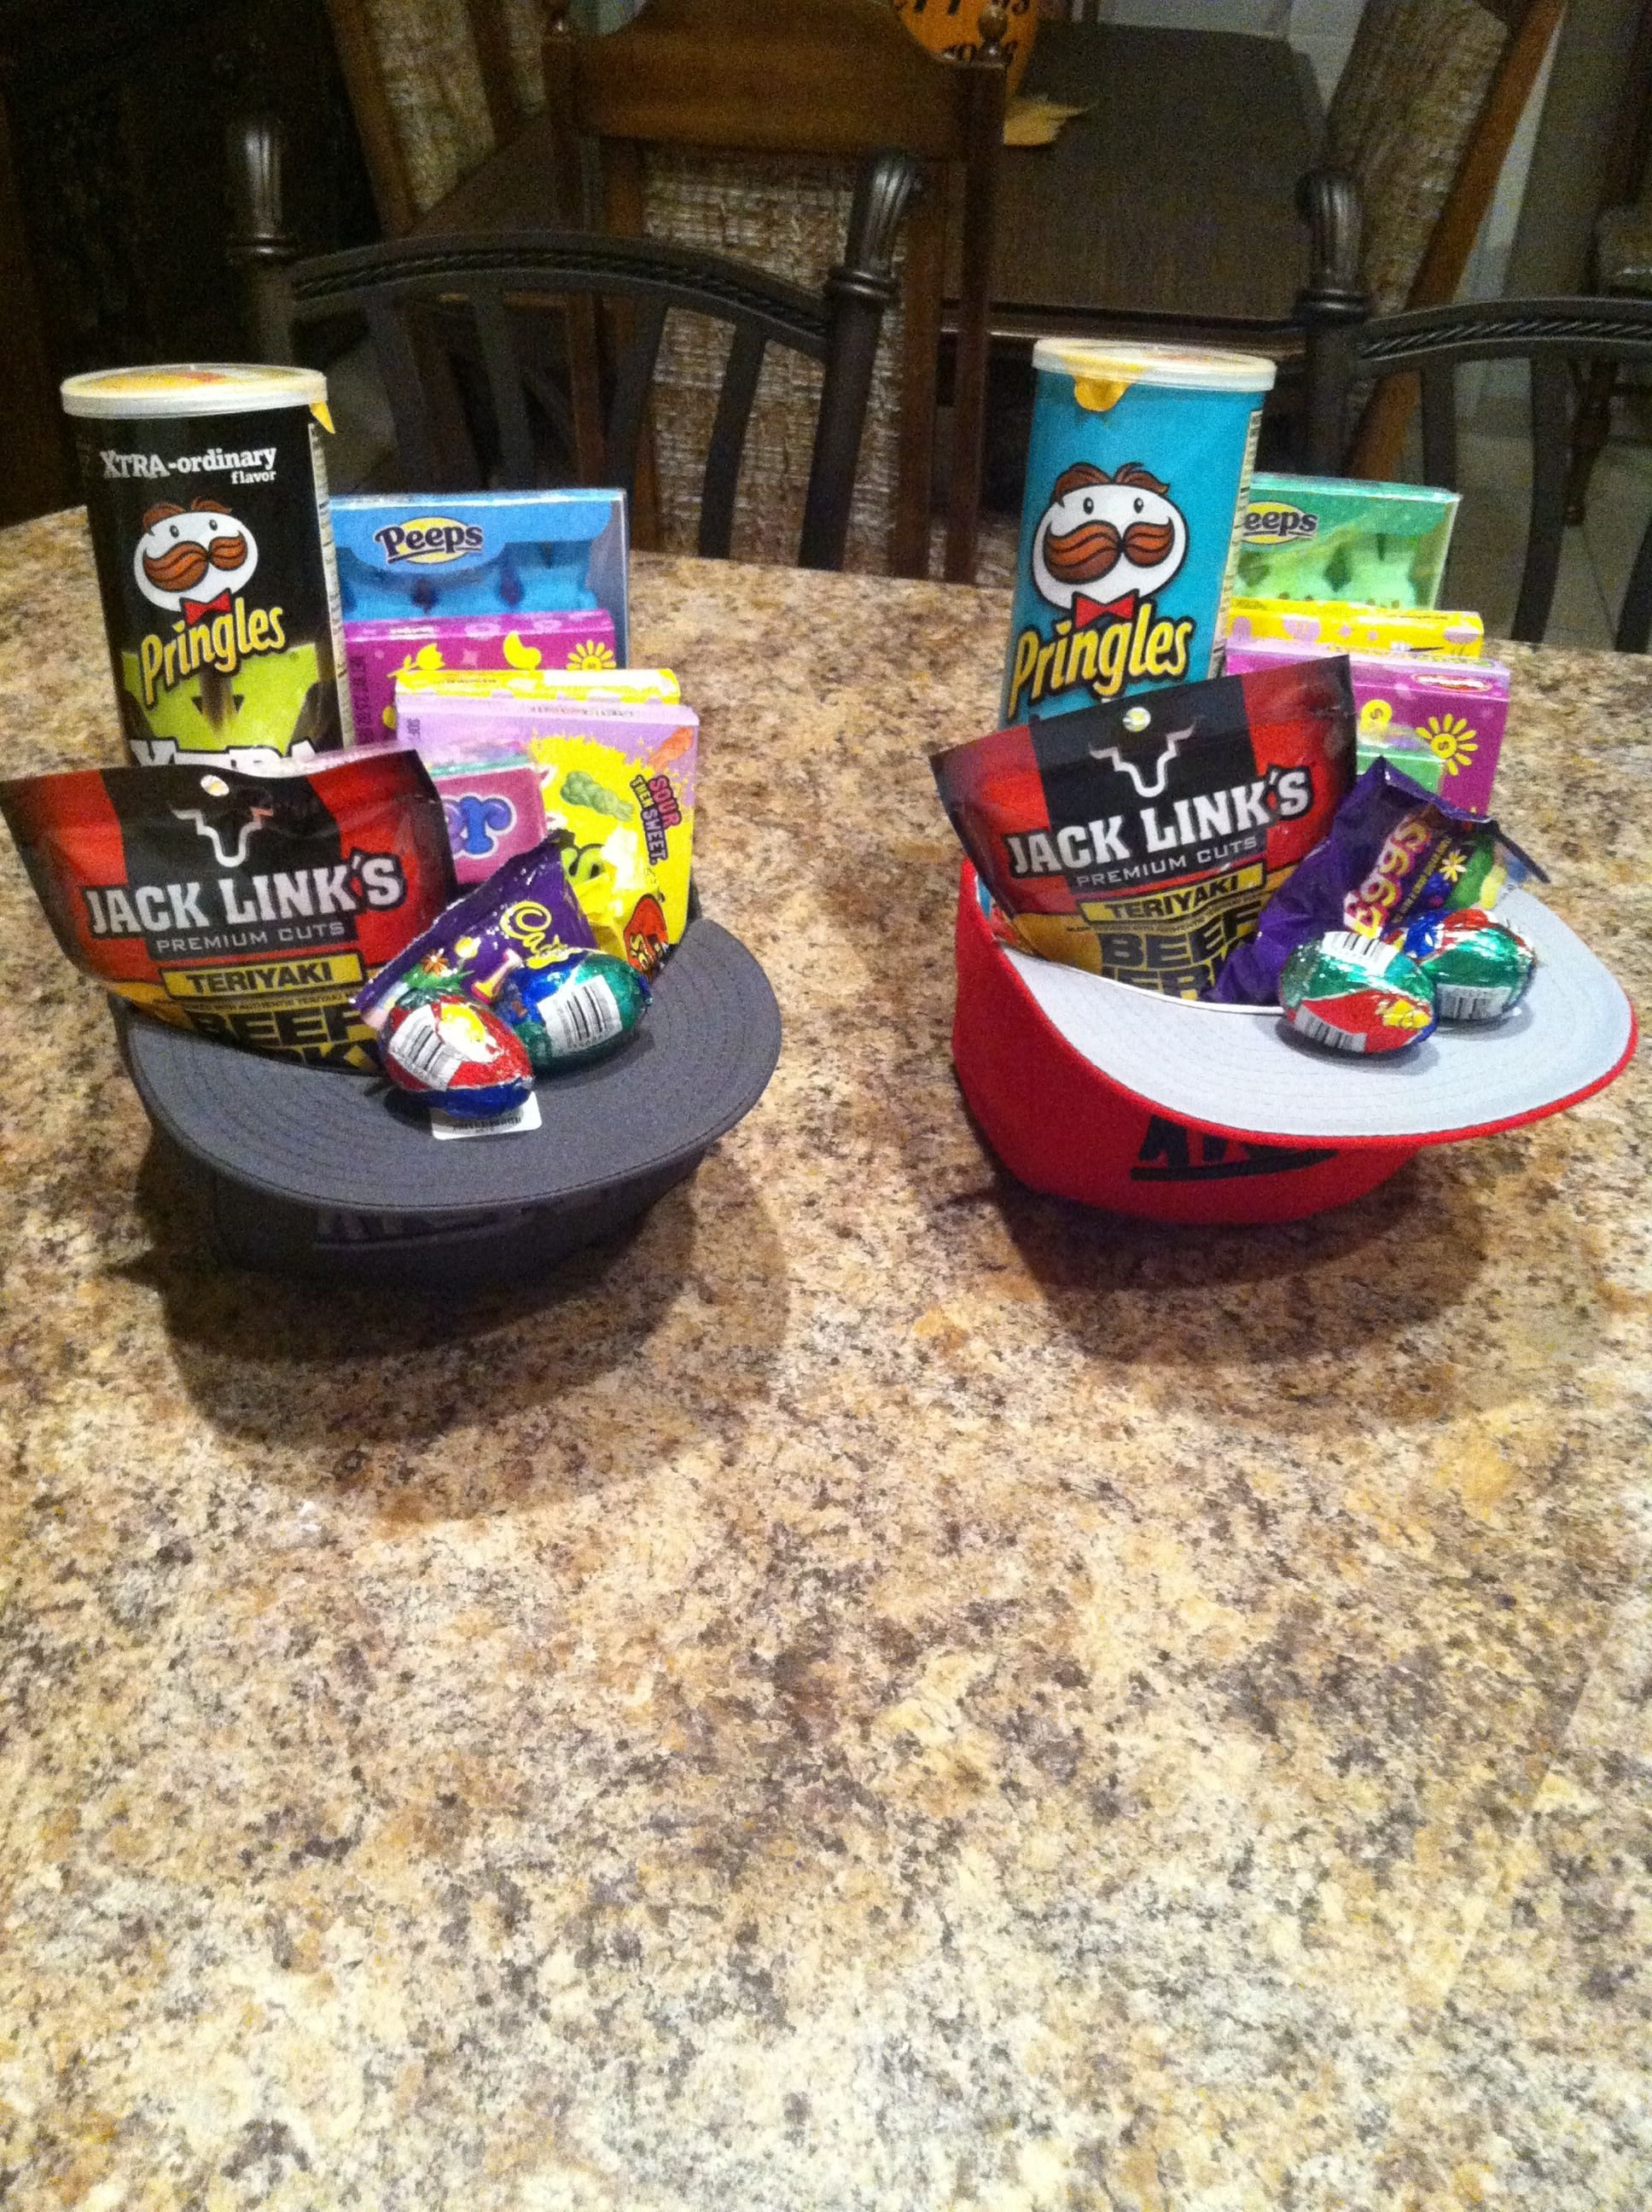 10 Most Recommended Easter Basket Ideas For Tweens give them something special with a personalized easter basket 2 2020